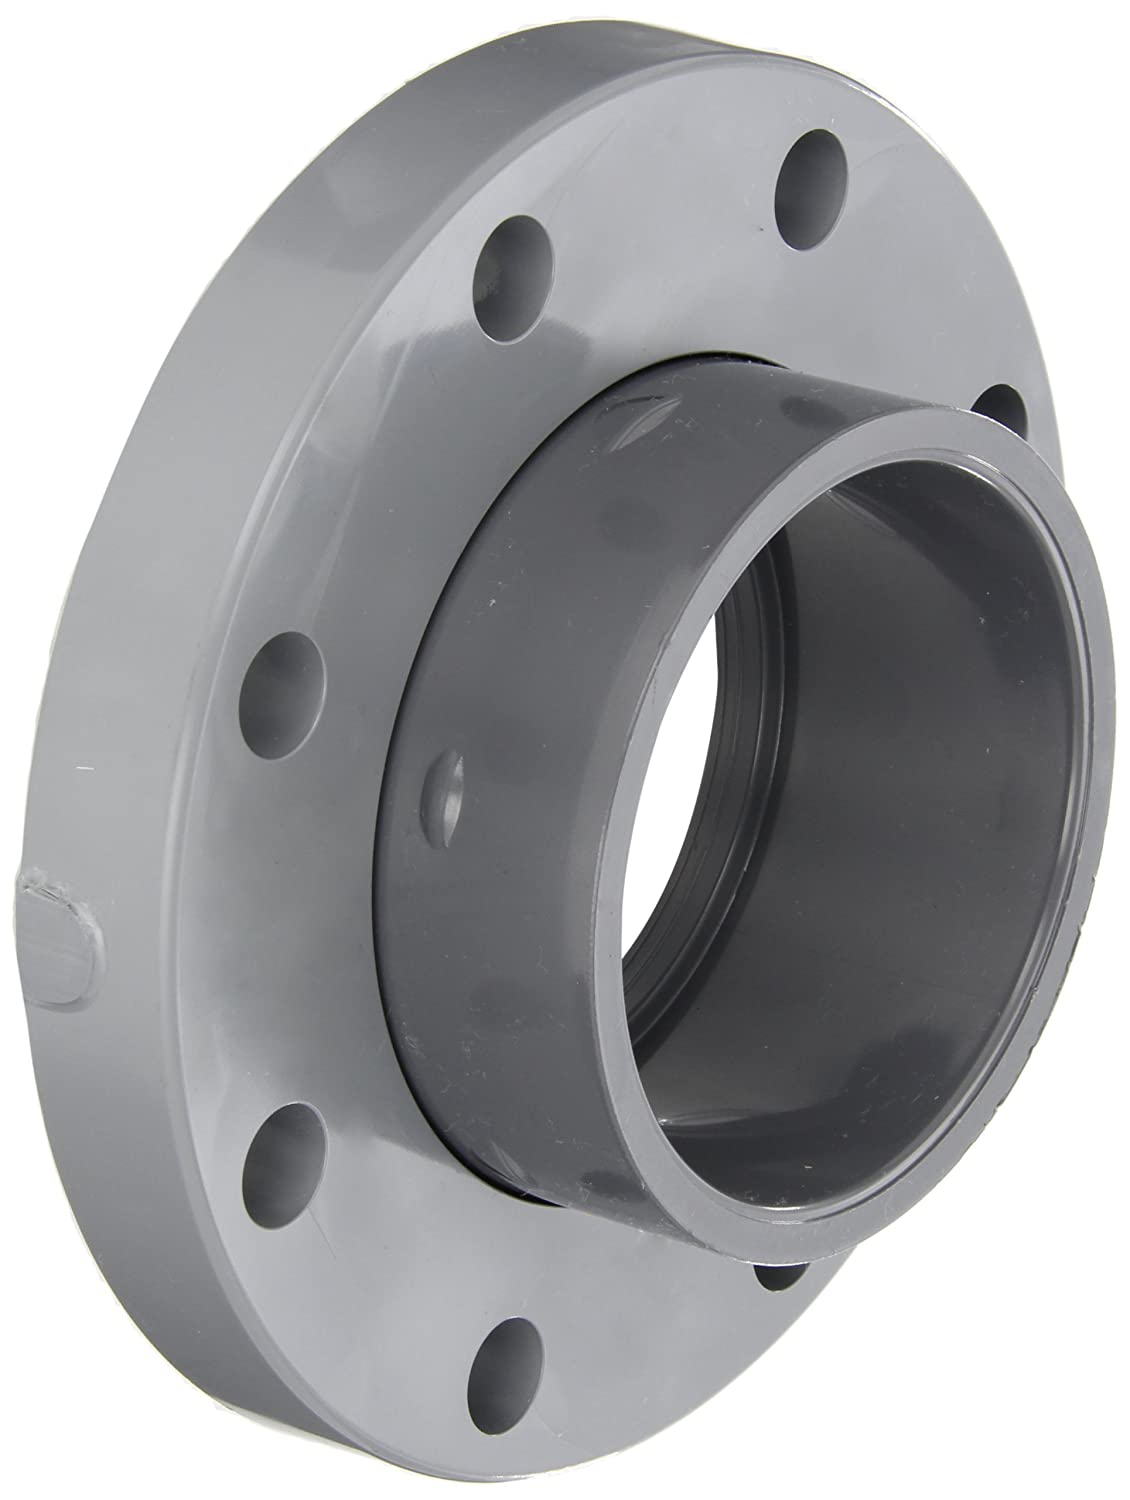 Gf piping systems pvc pipe fitting van stone flange